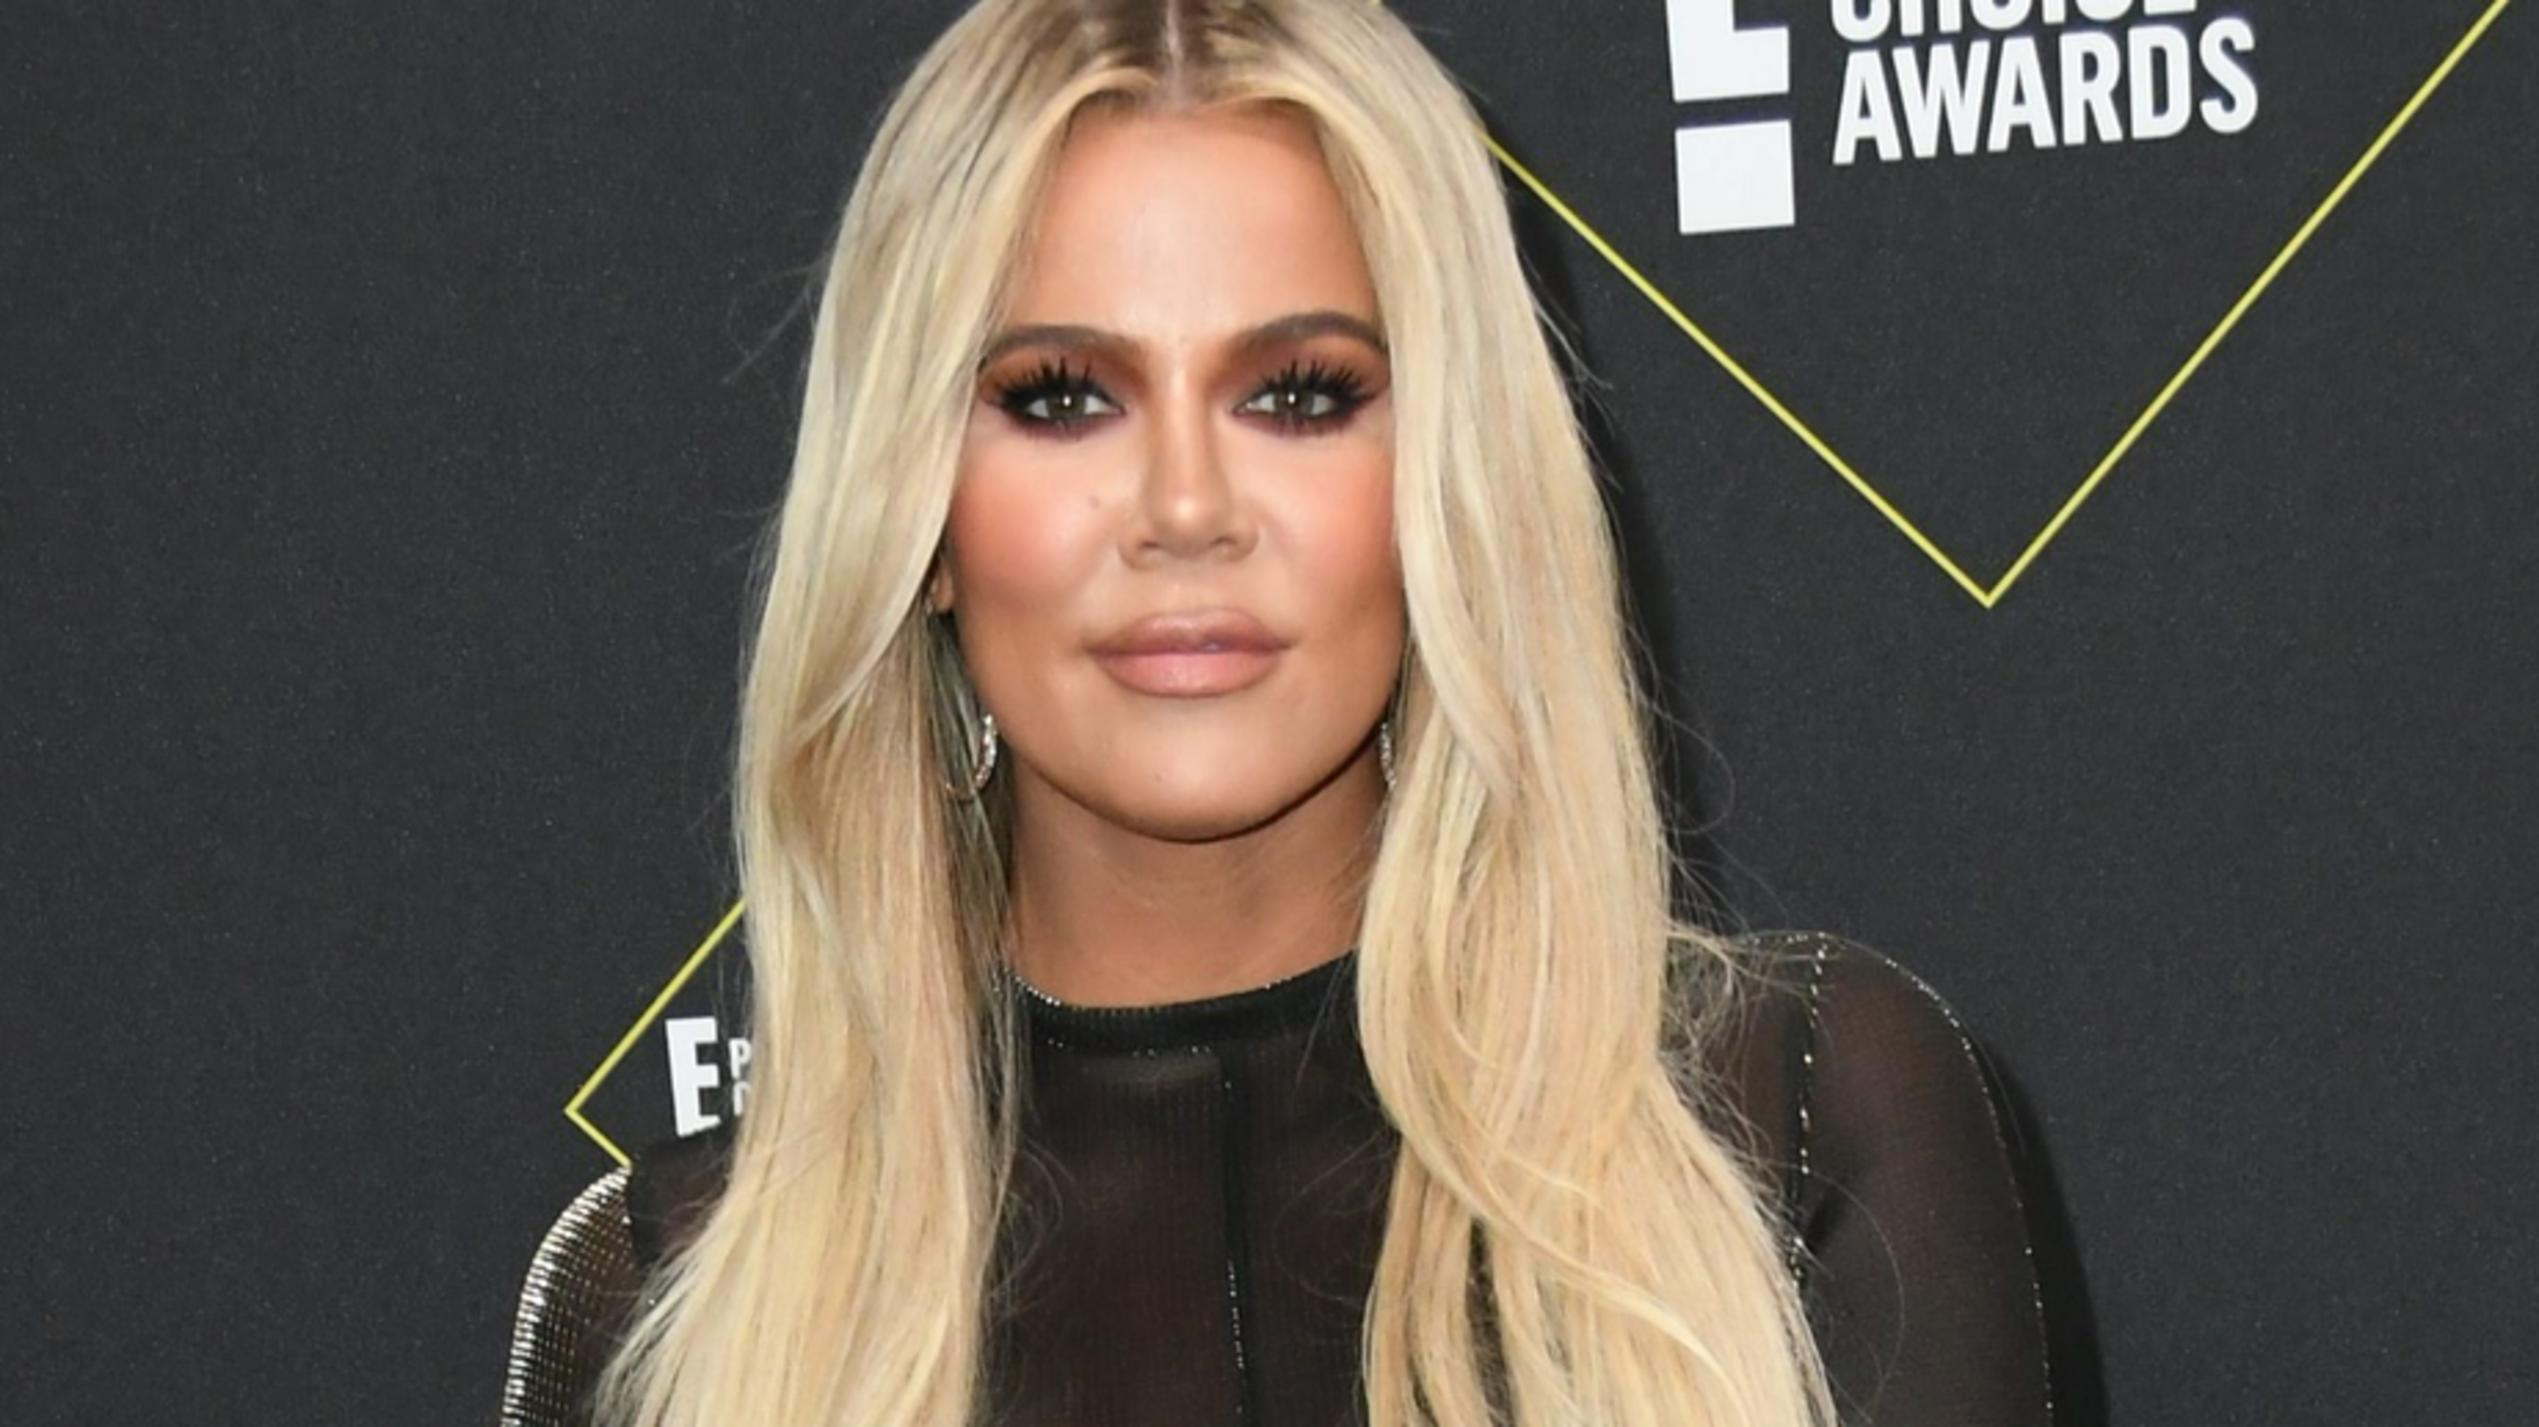 Khloé Kardashian bei den People's Choice Awards 2019.